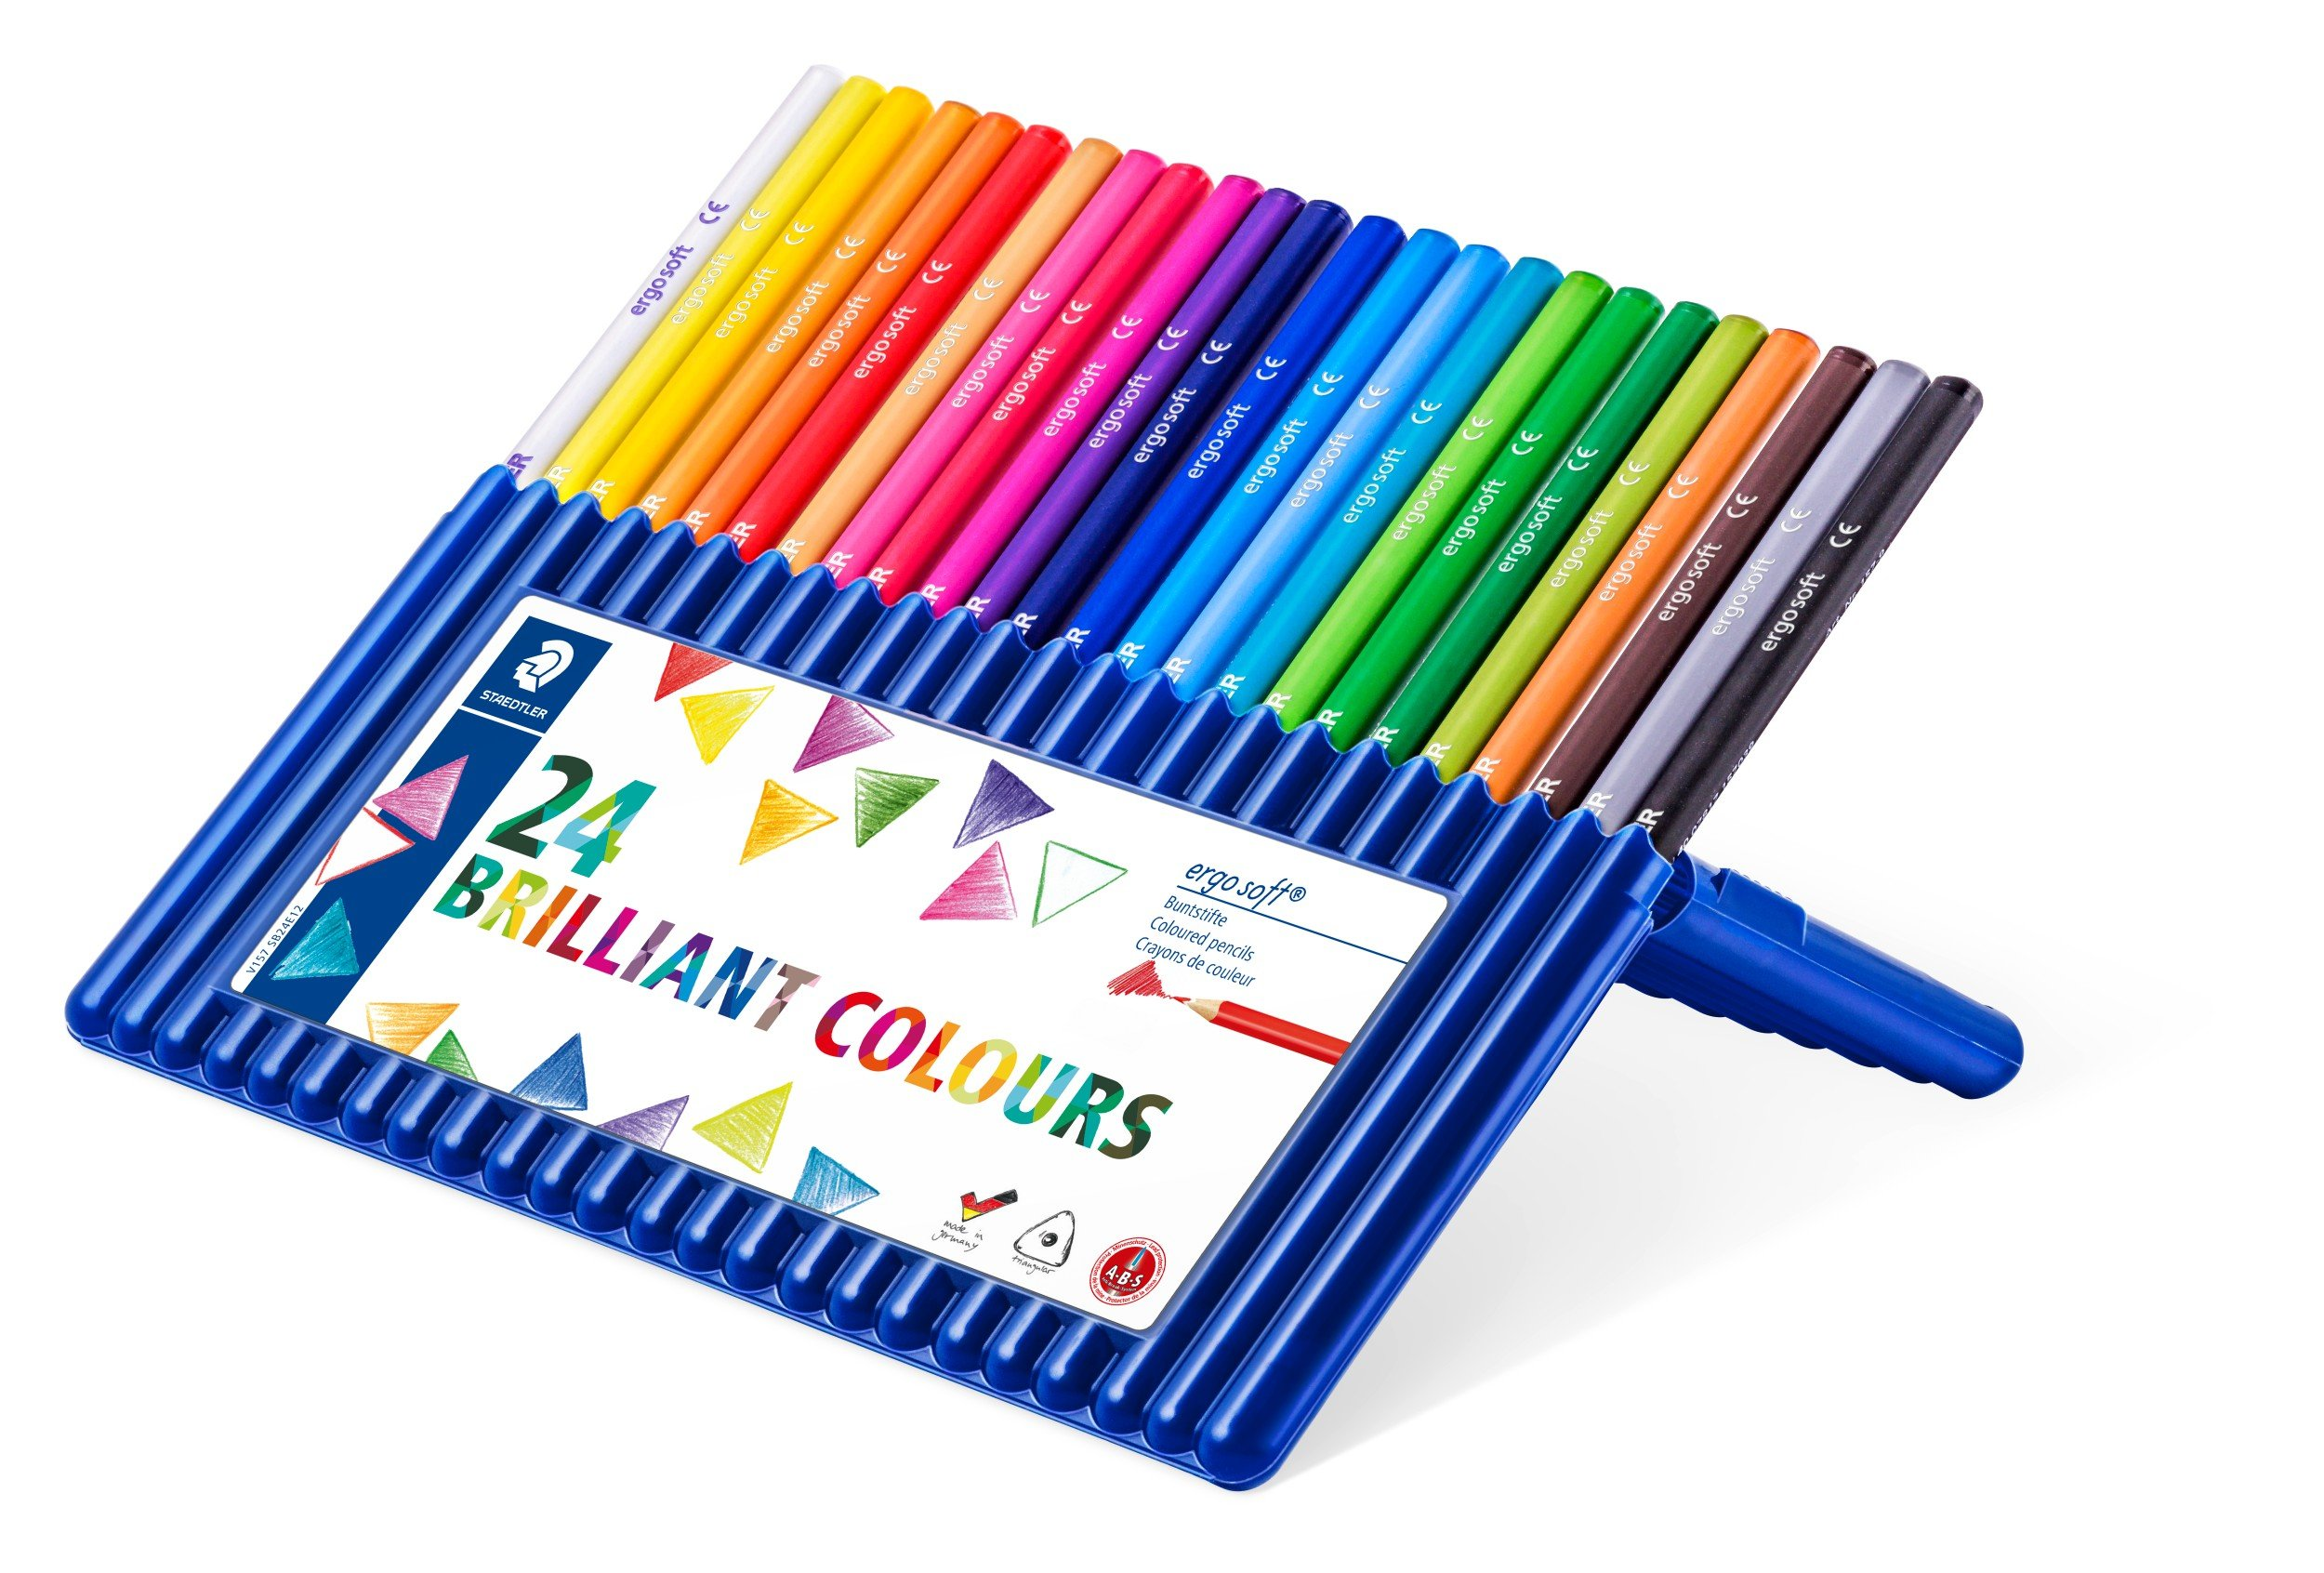 Staedtler Ergosoft Colored Pencils, Set of 24 Colors in Stand-up Easel Case (157SB24) by STAEDTLER